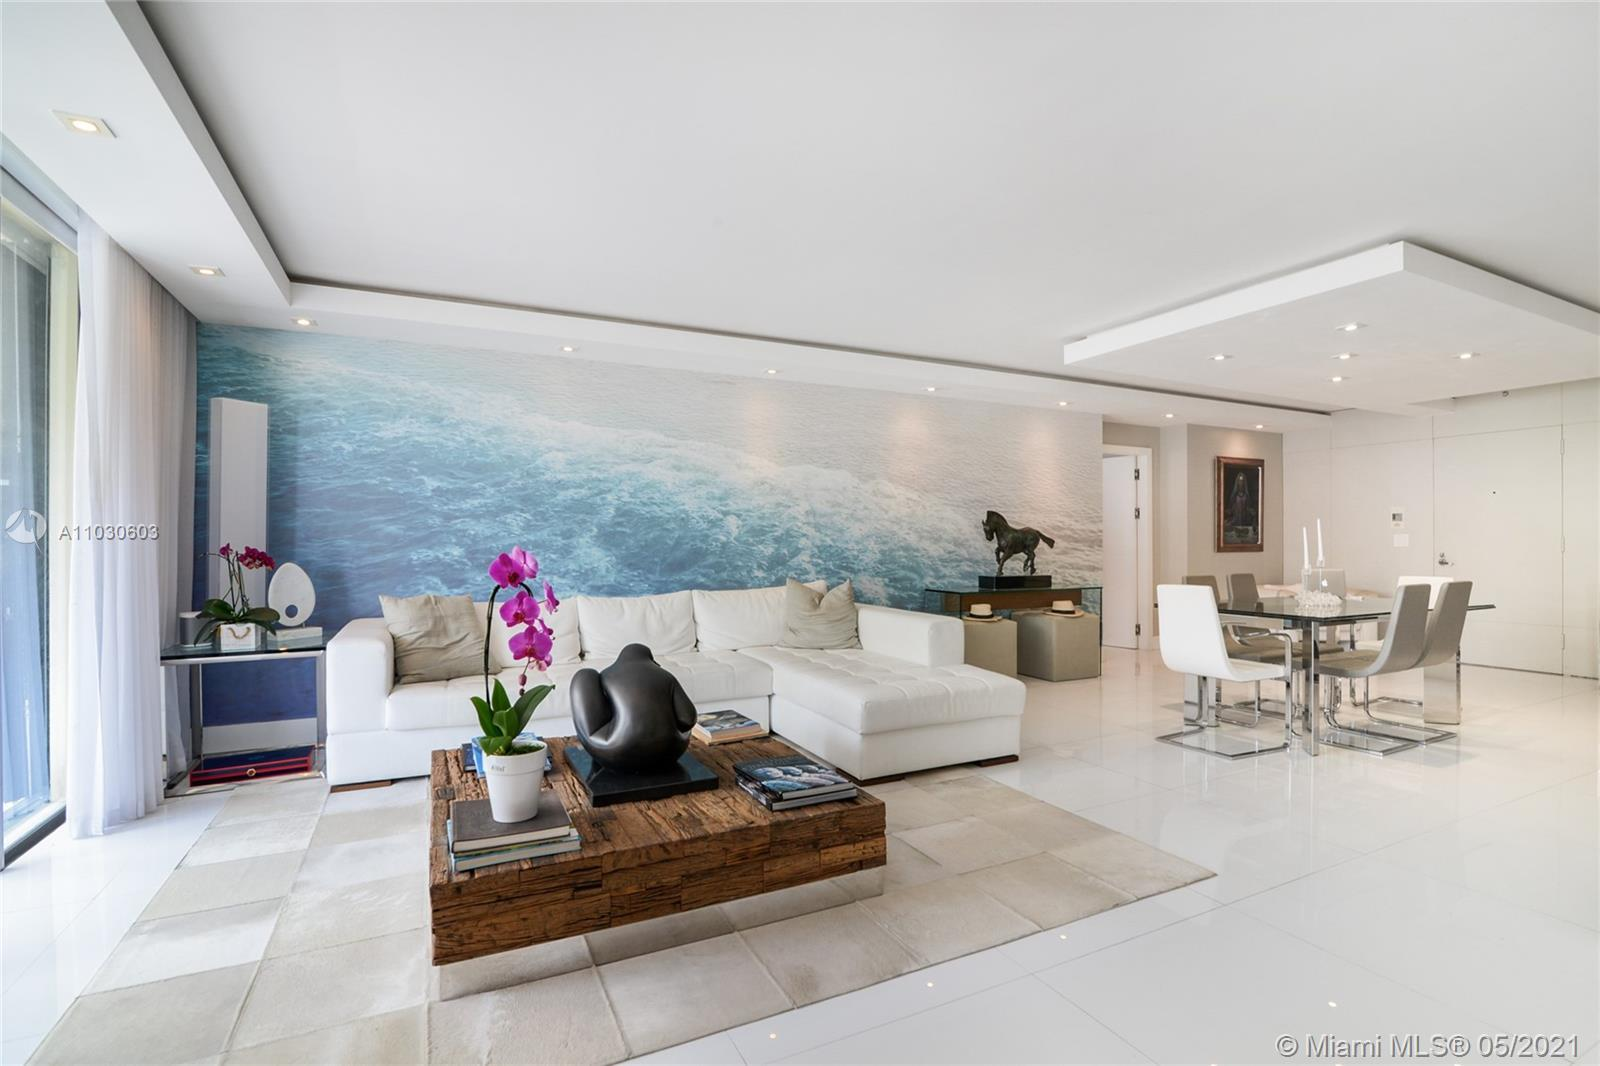 Balmoral the location. Unit 19J, 1,388 SqFt, substantially remodeled with South views. Ocean views f